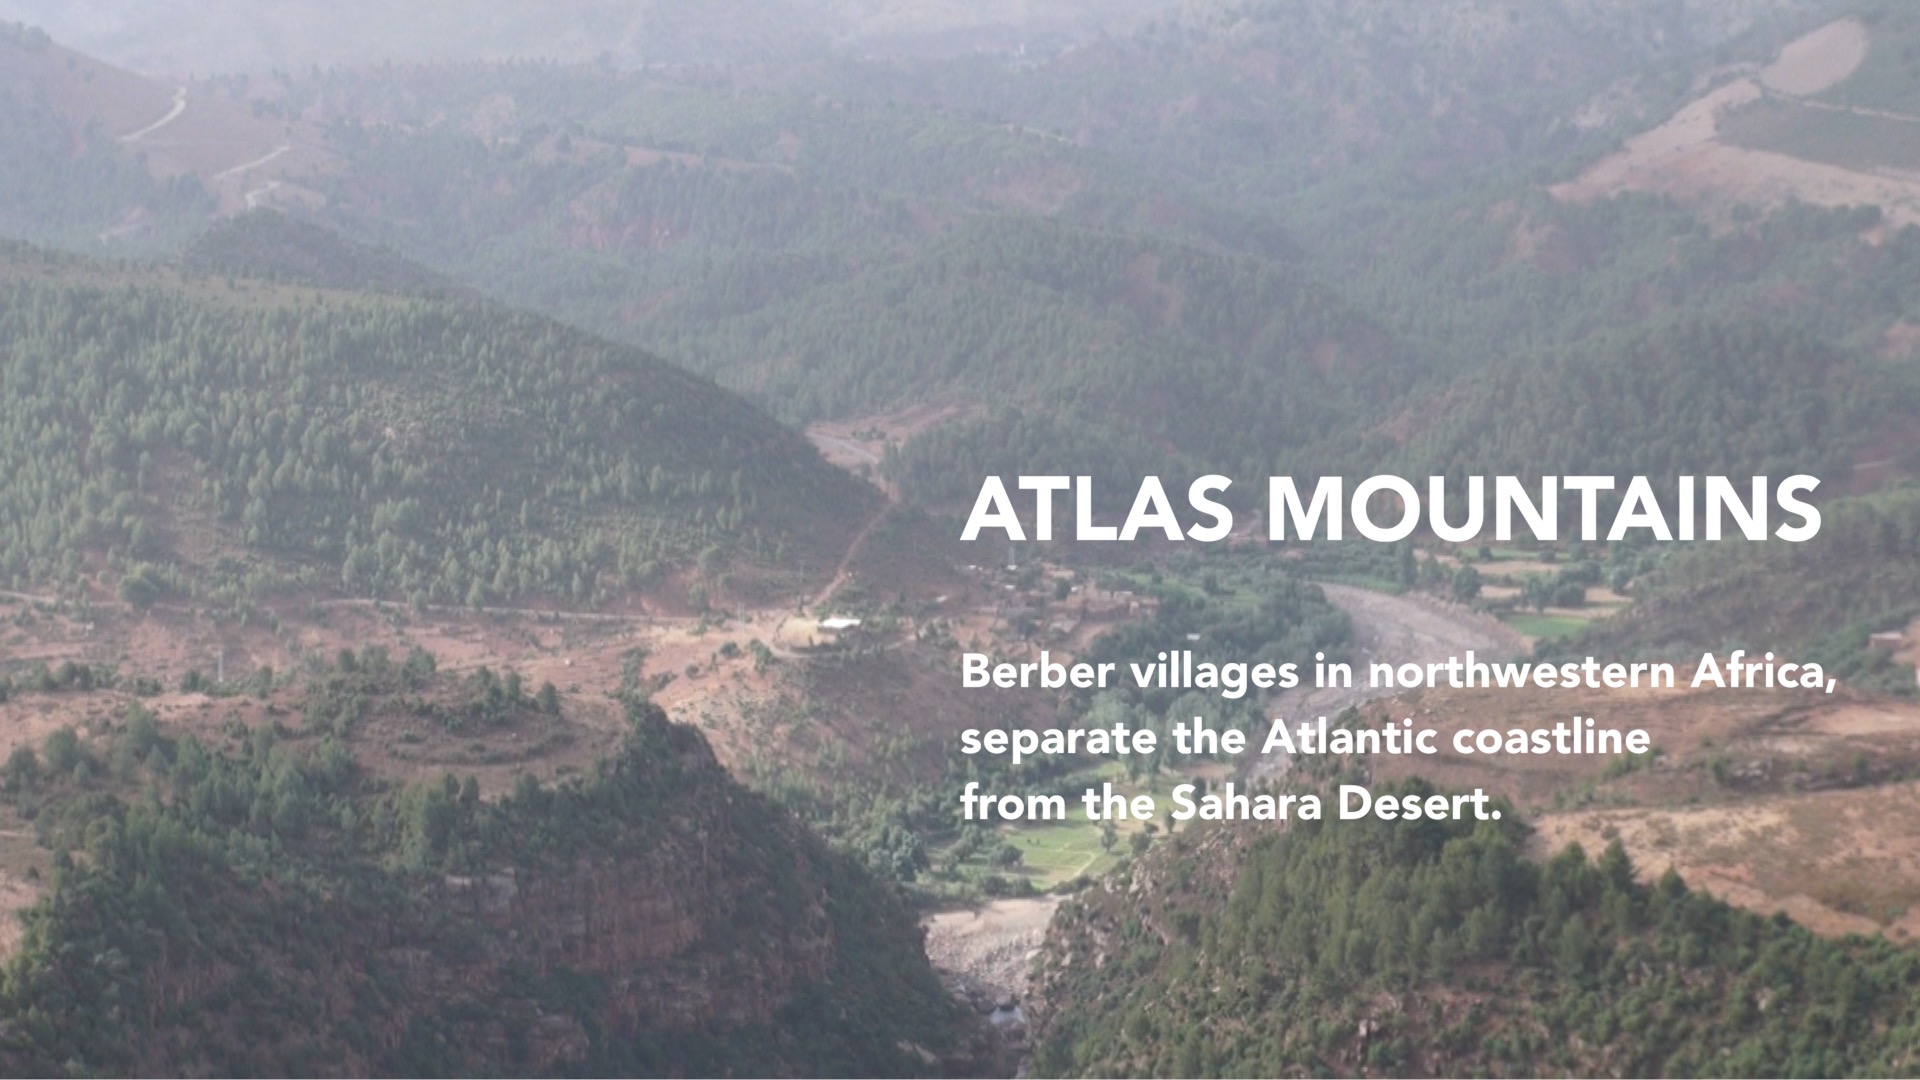 Atlas Mountains of Africa